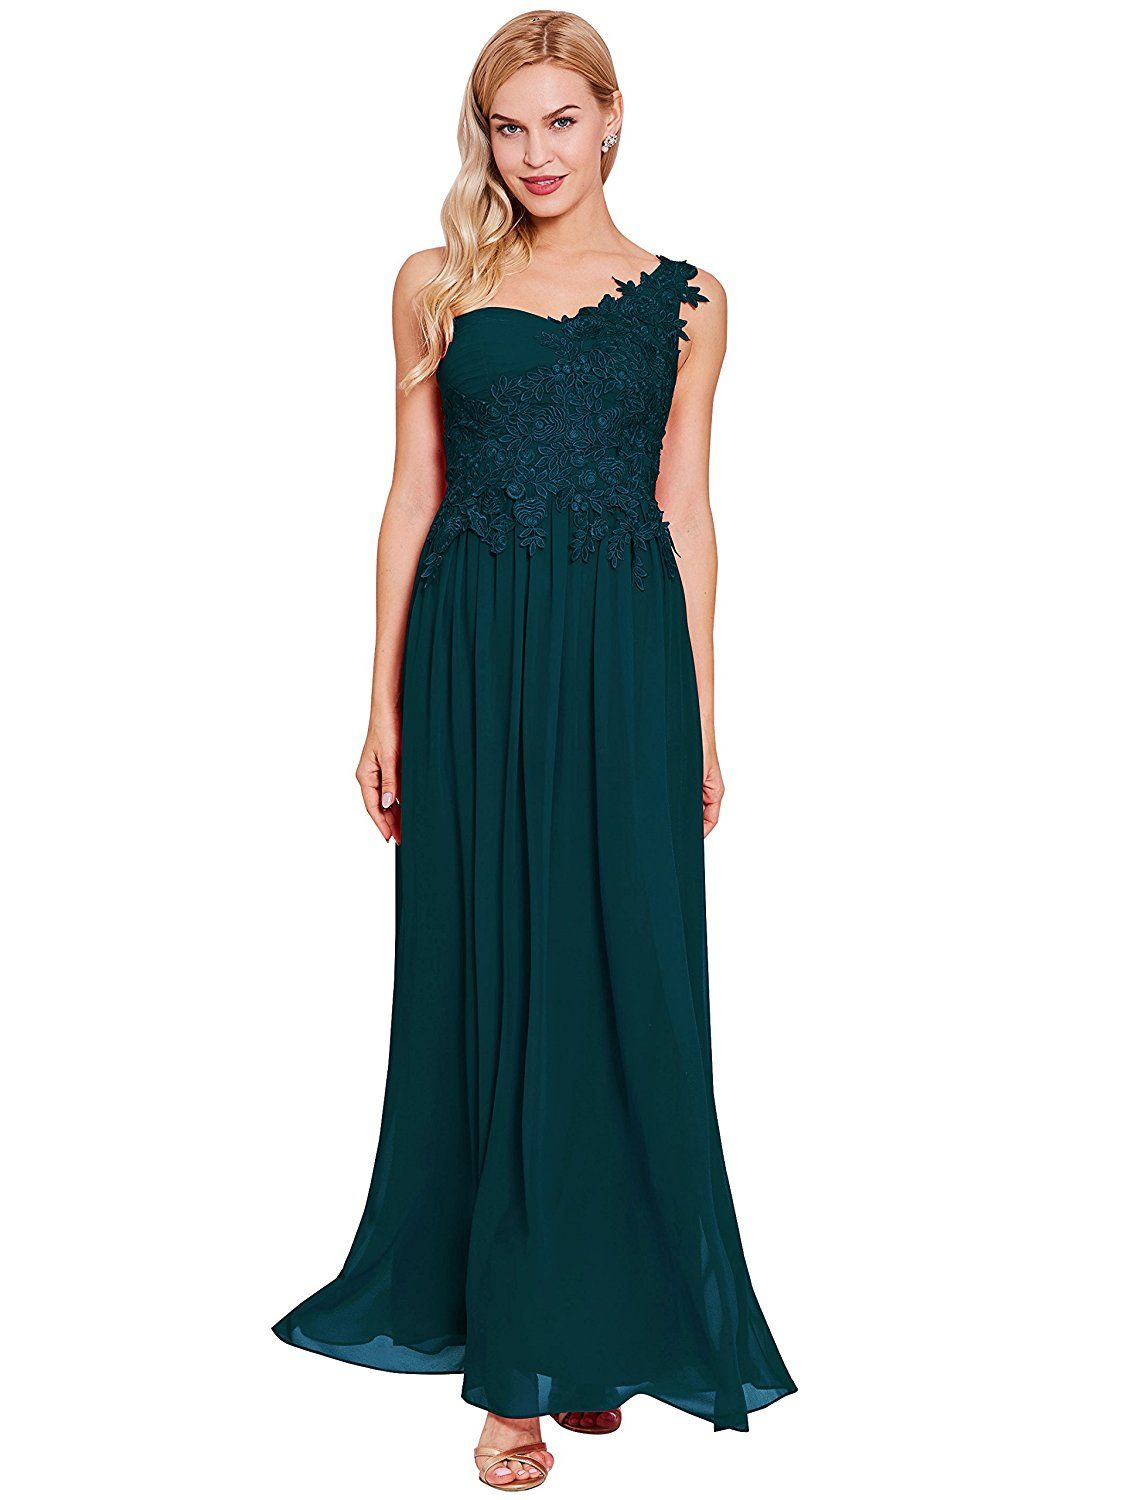 Tanpell Women S Appliques One Shoulder A Line Evening Prom Dress At